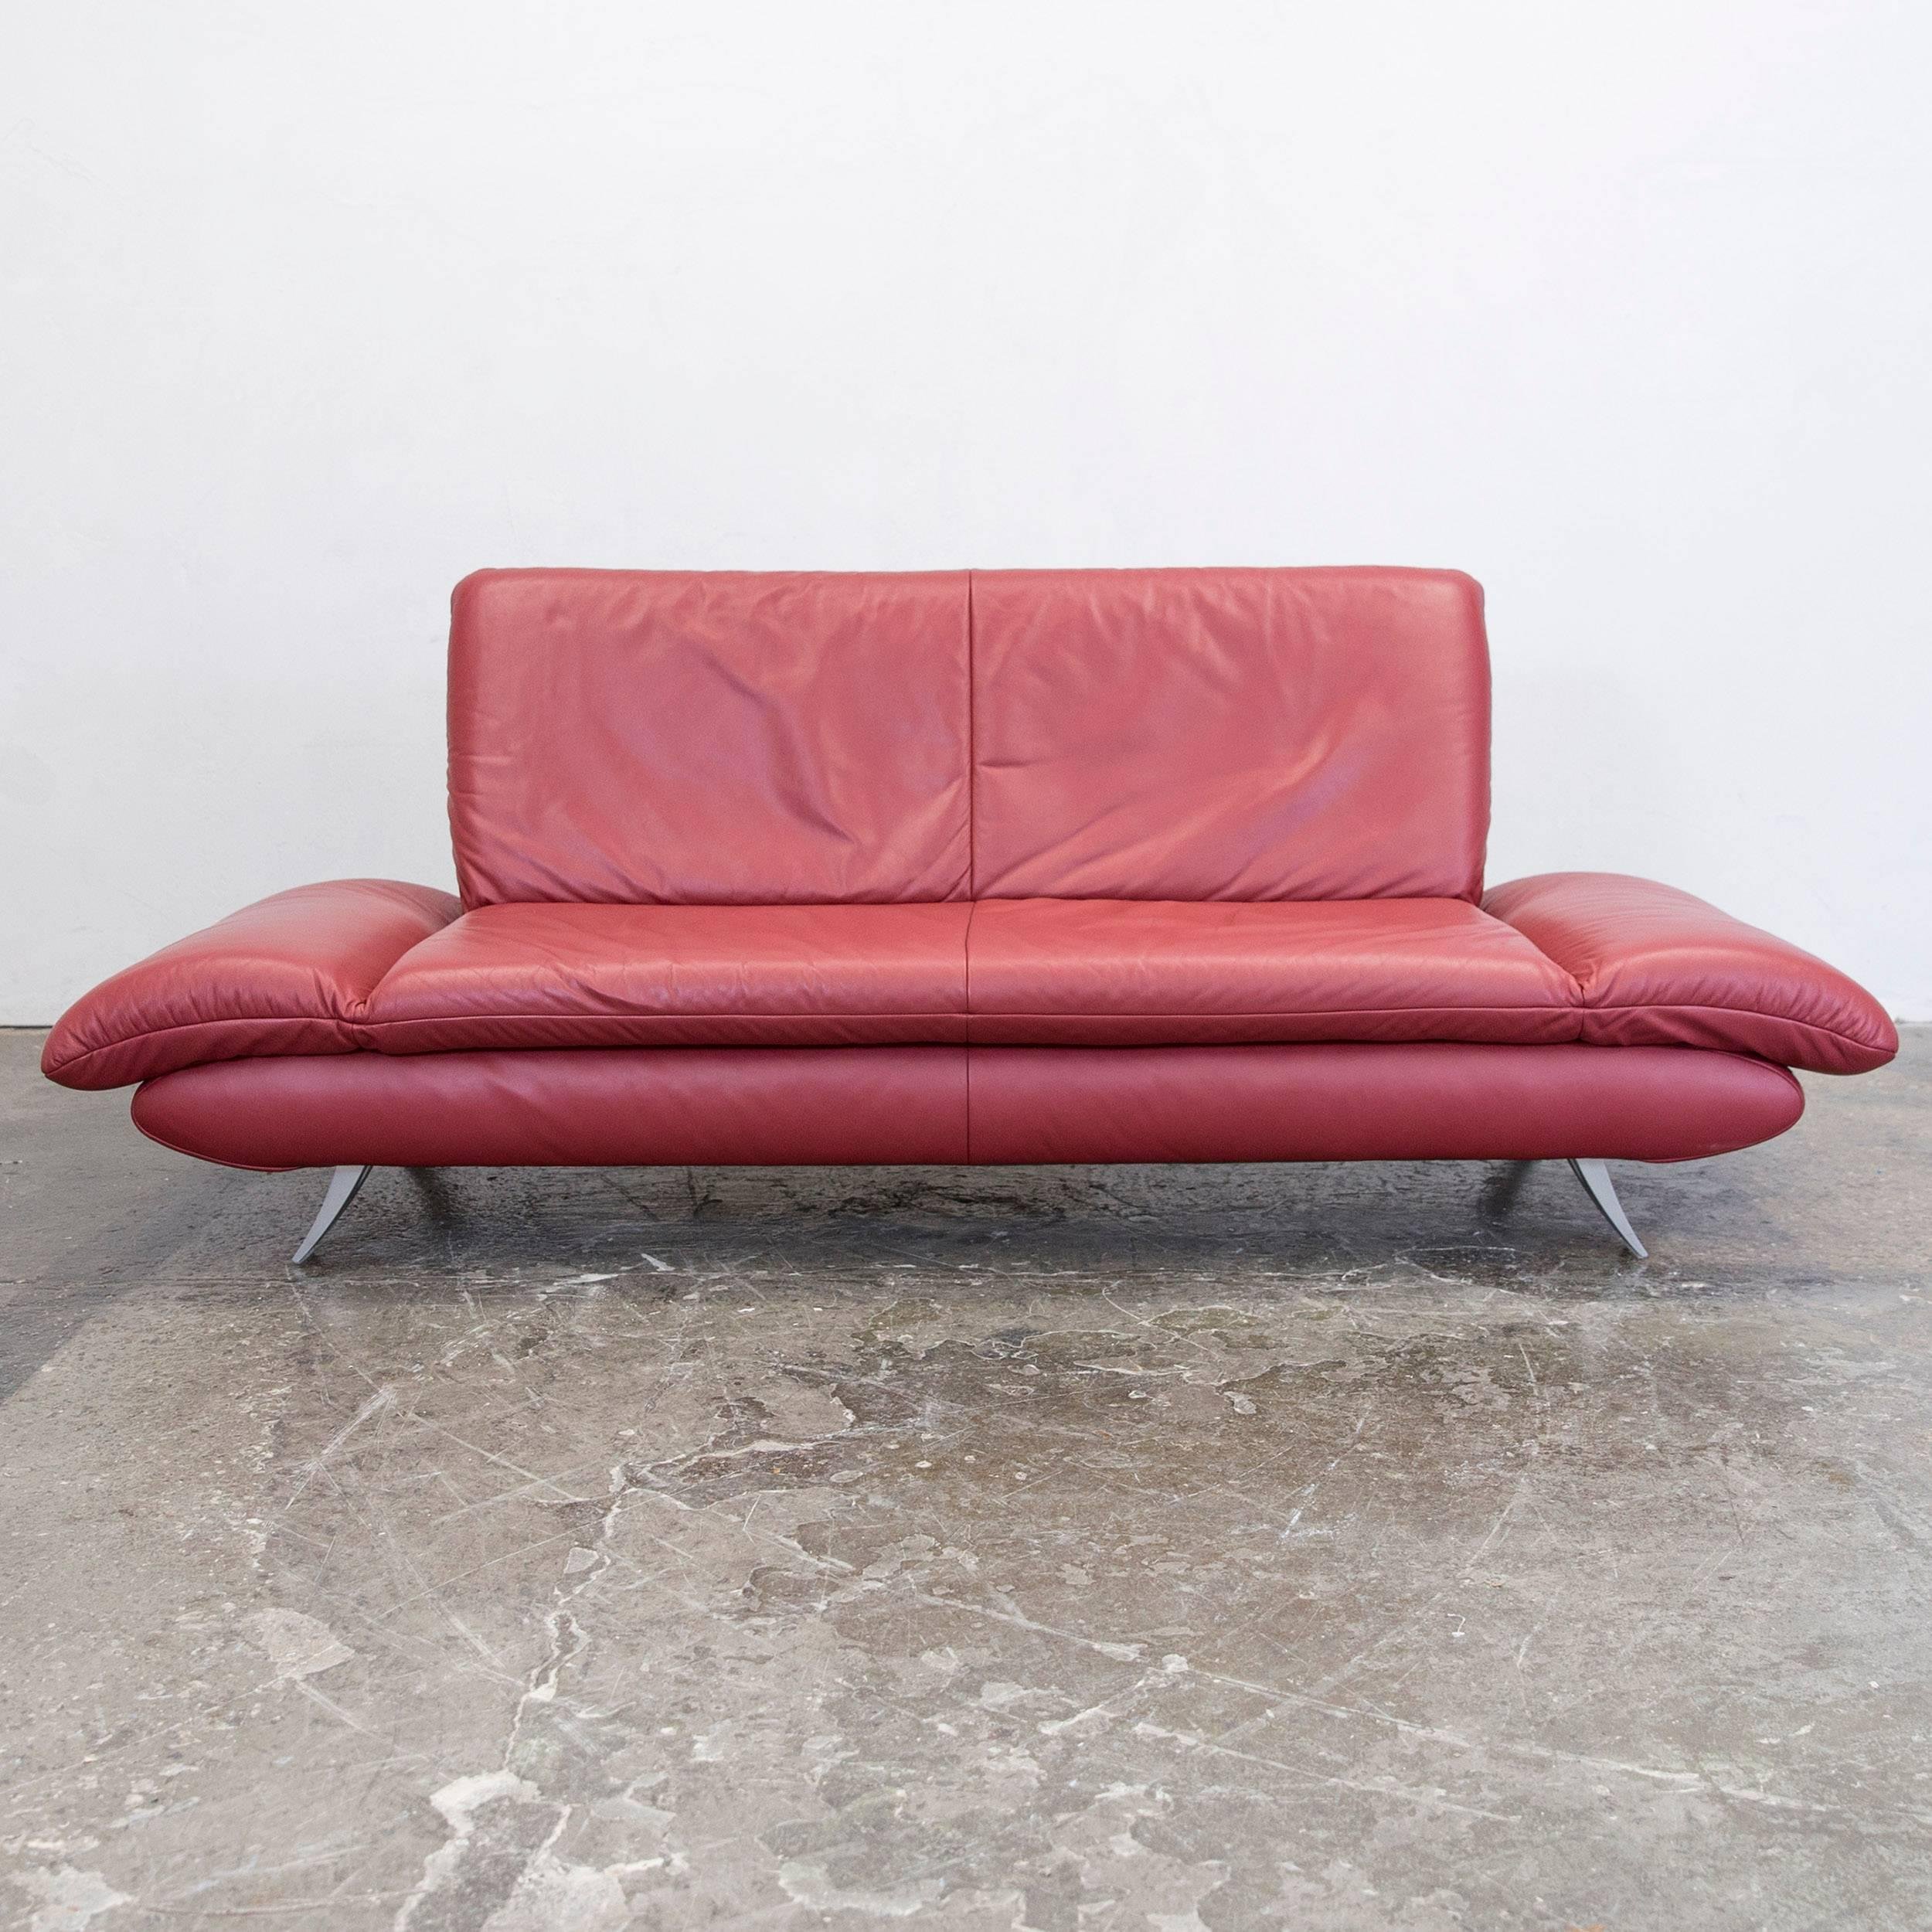 Attractive Amazing Koinor Rossini Designer Sofa Set Red Full Leather Threeseat Twoseat  With Mbel Koinor Ideas